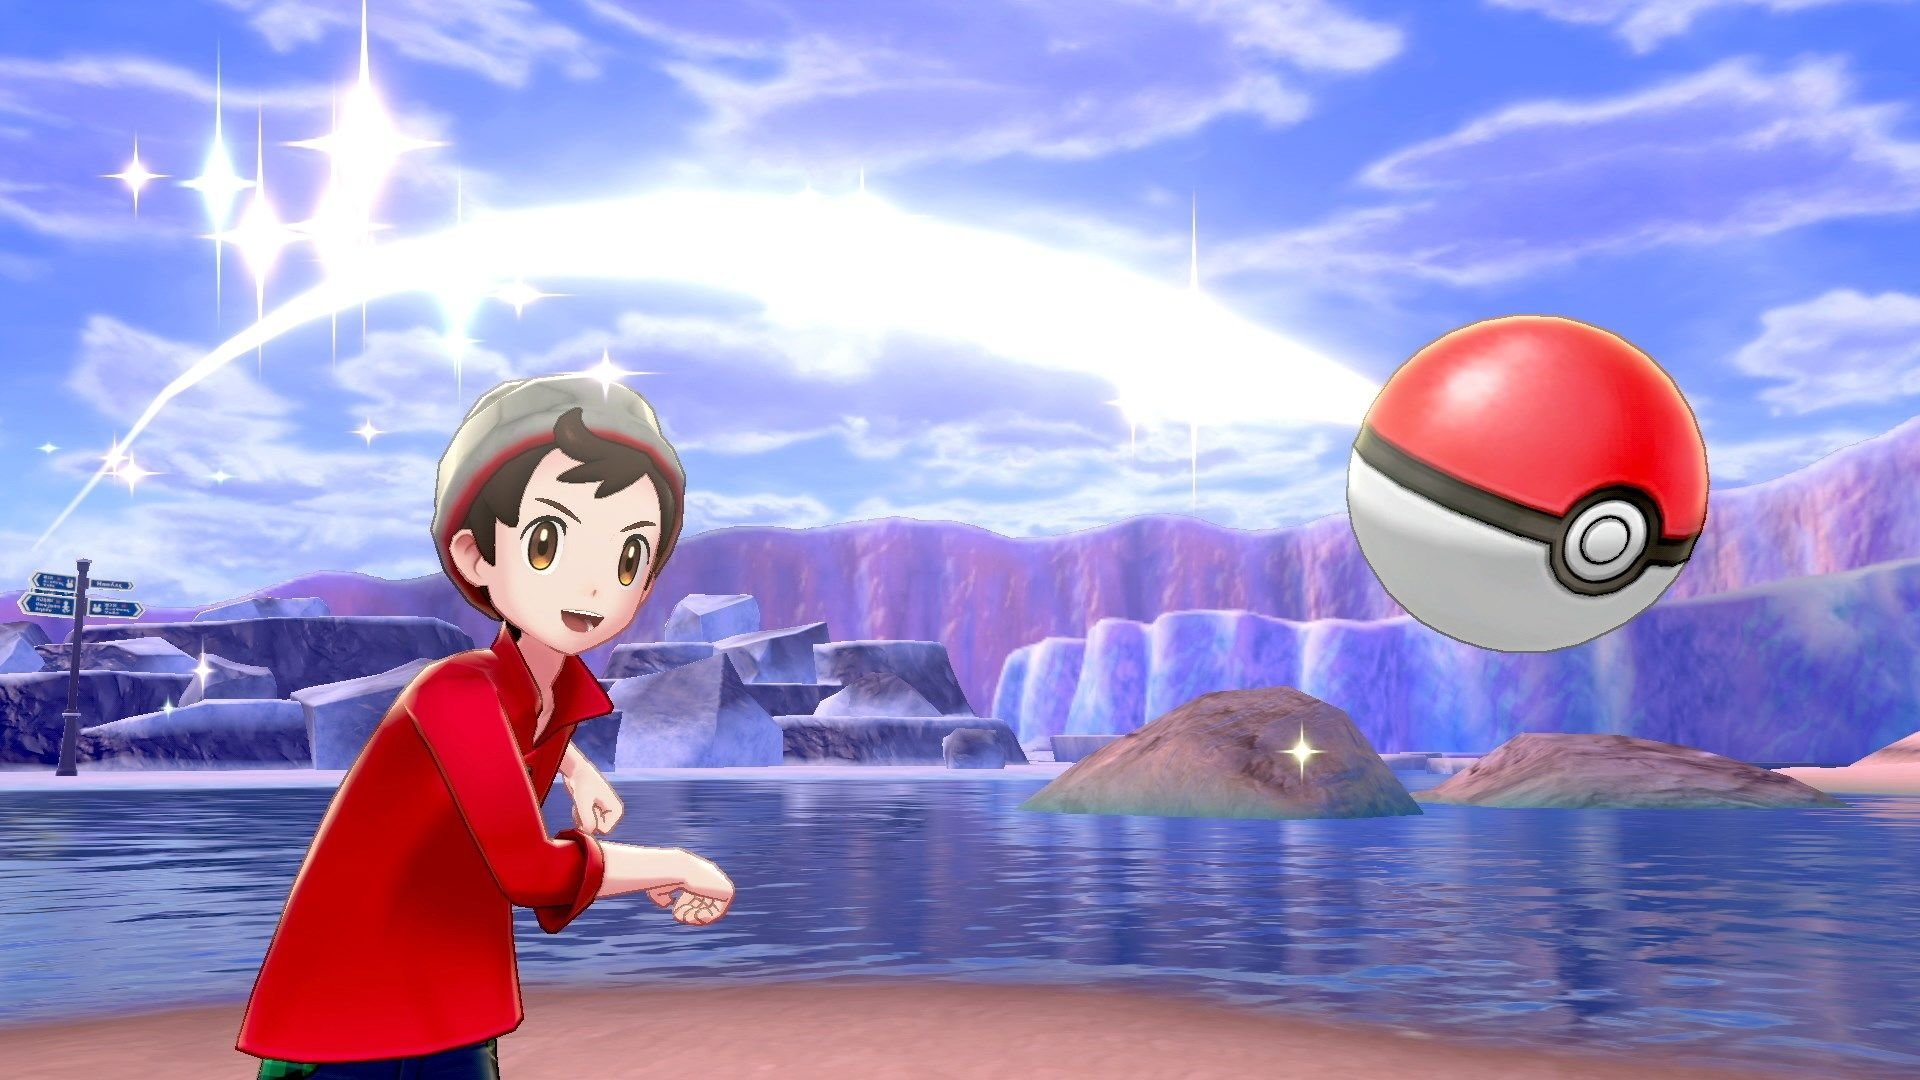 A playable demo for Pokemon Sword and Shield will reportedly be available at E3 2019.